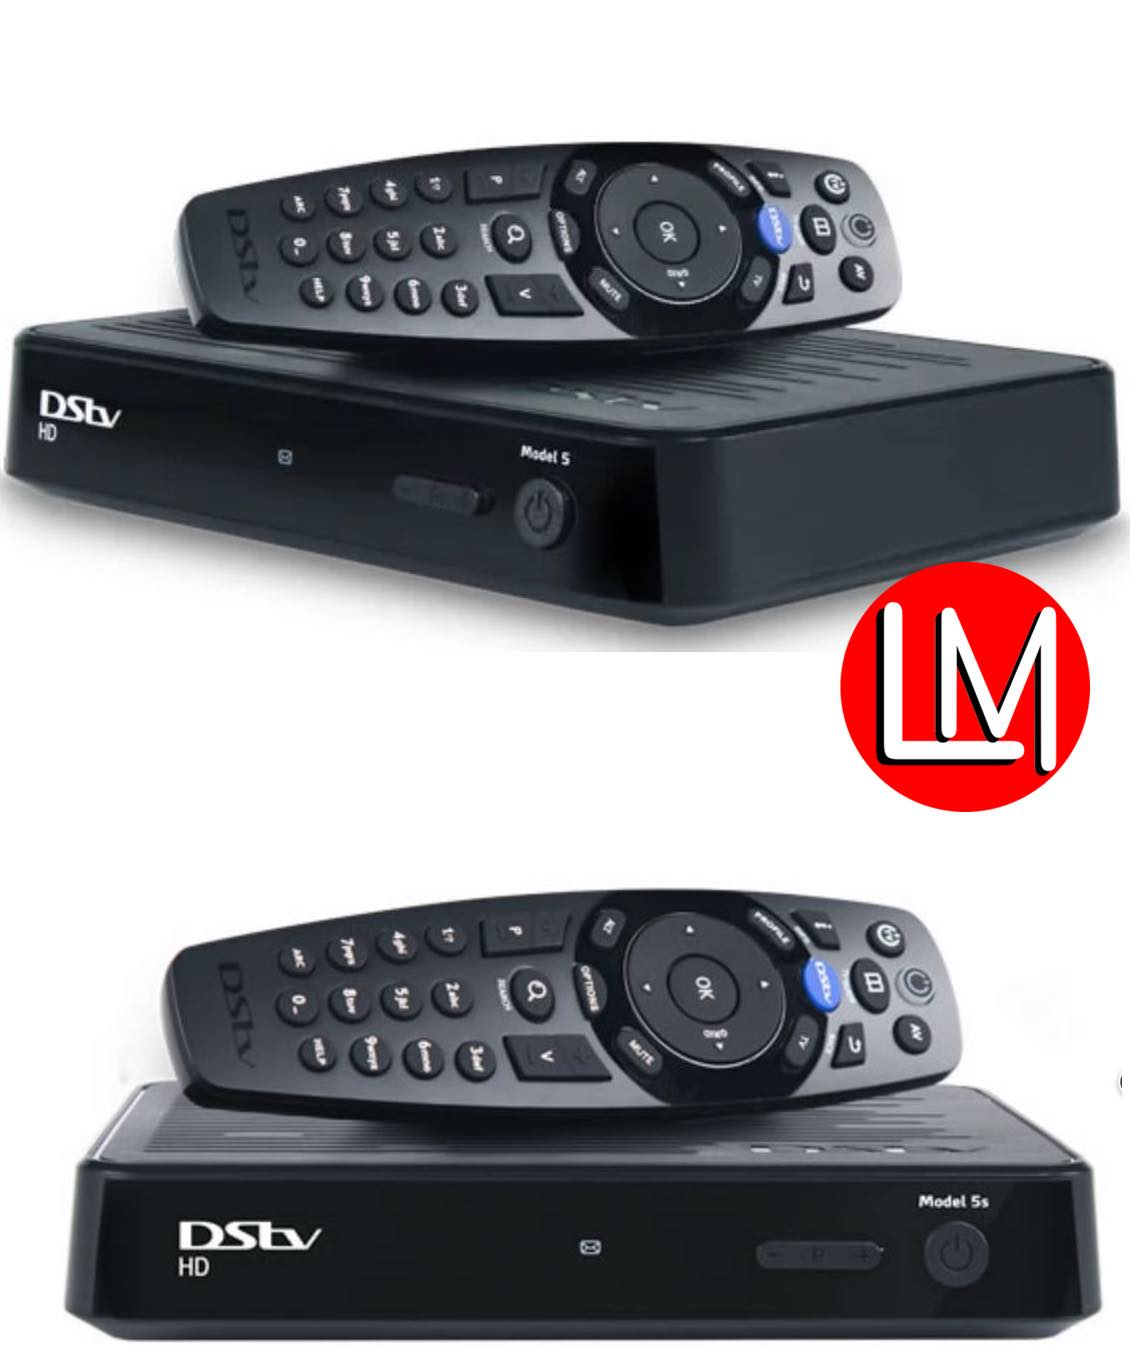 DStv decoder extra-view/XtraView configuration for Series 5 easy guide